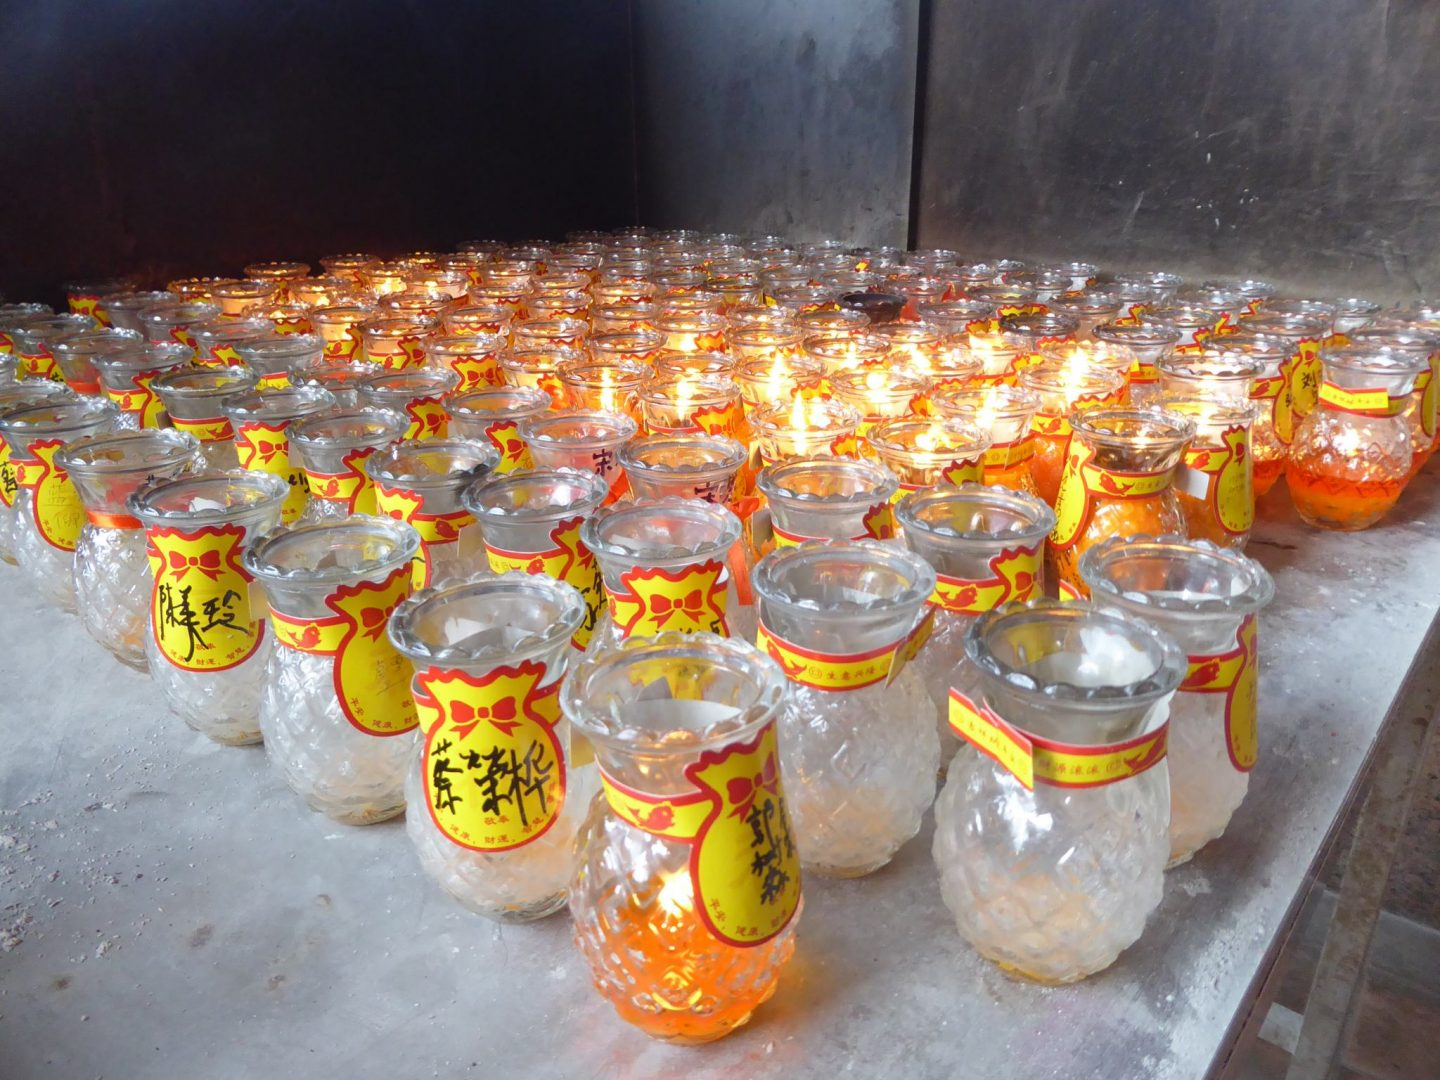 Buddhist candles burning. many candles inside glass with chinese lettering on the outside.